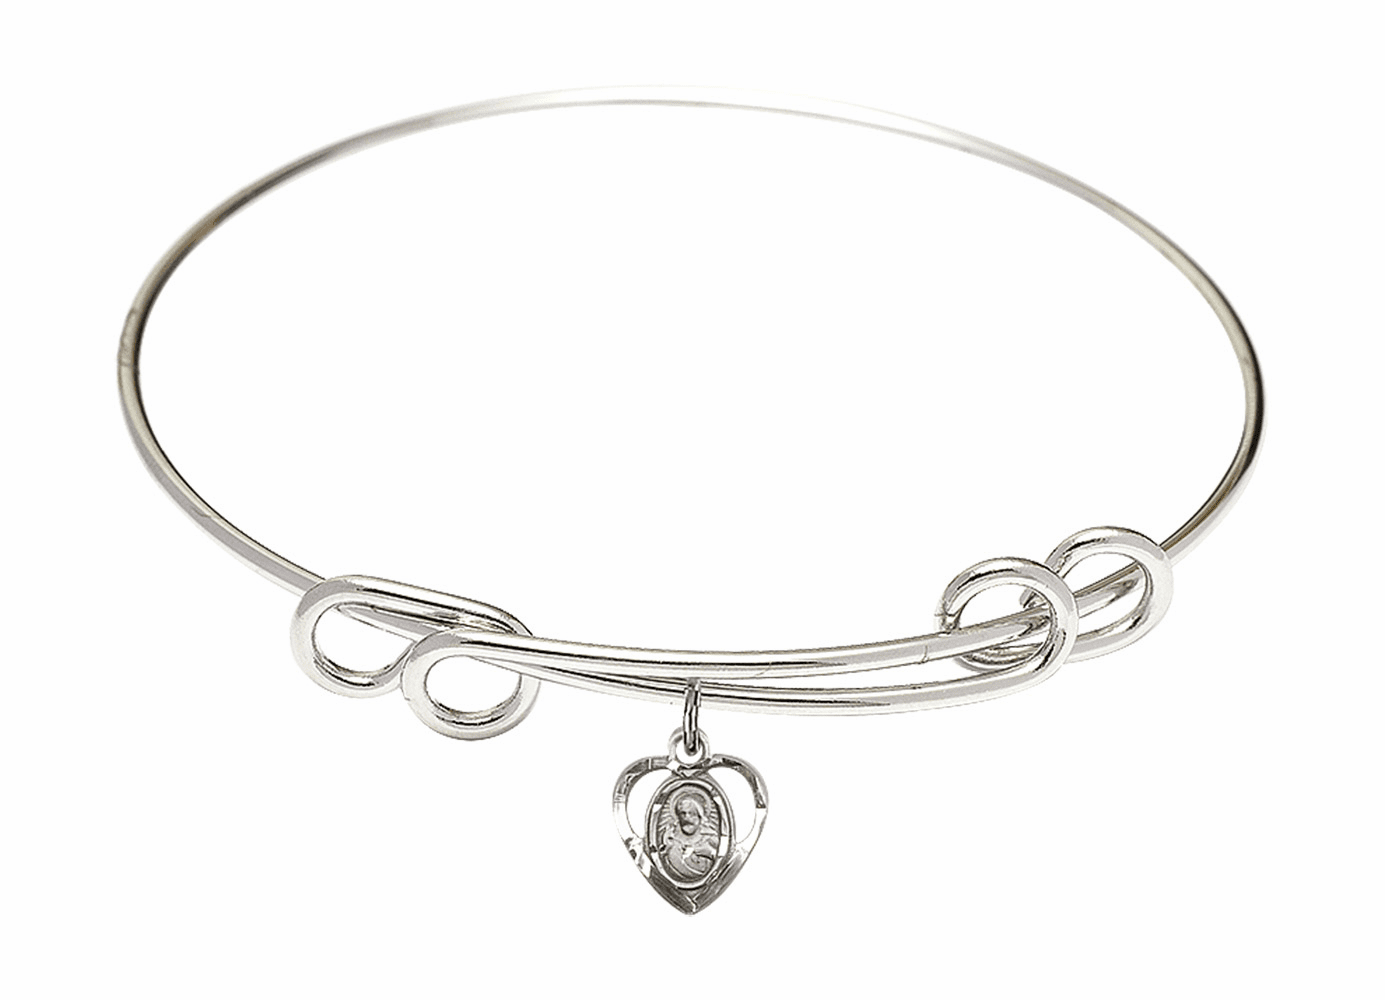 Round Double Loop Bangle Bracelet w/Sacred Heart Sterling Silver Charm by Bliss Mfg